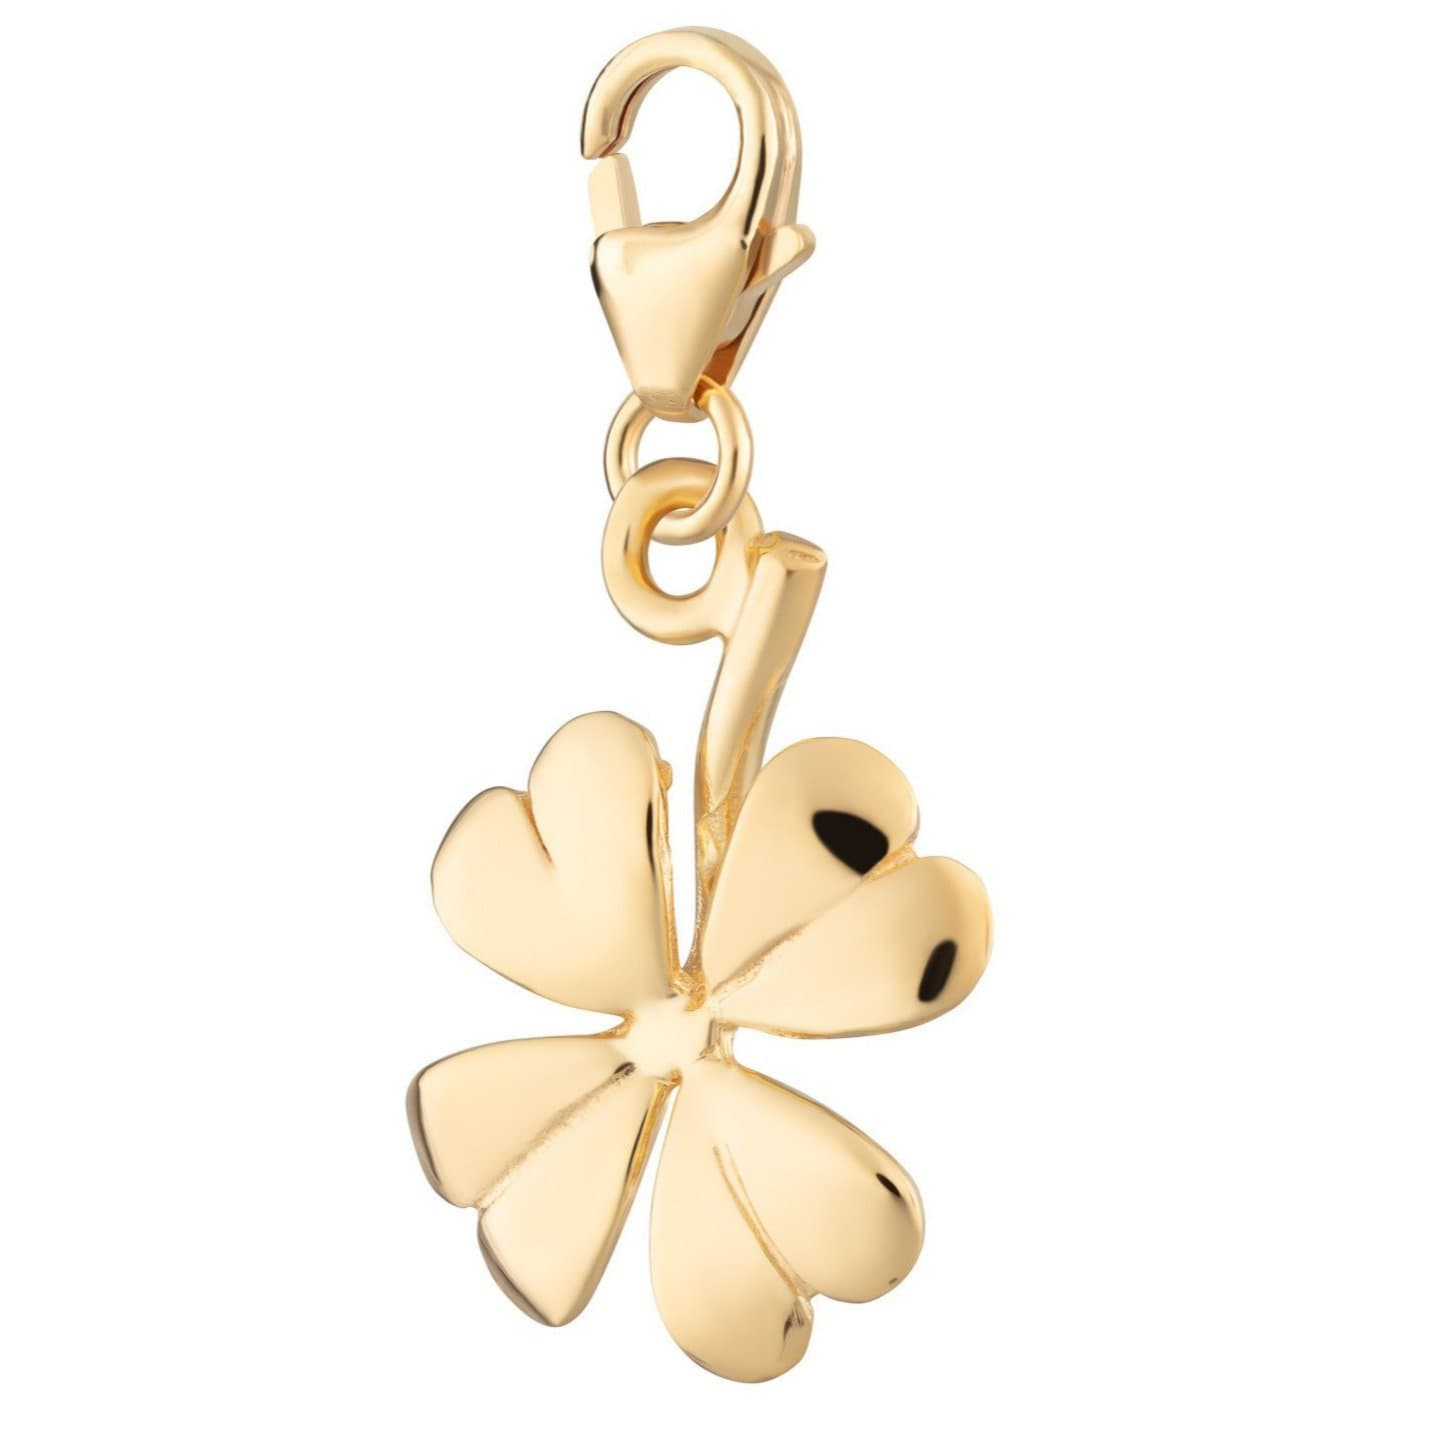 Gold Plated Four Leaf Clover Charm - Lily Charmed